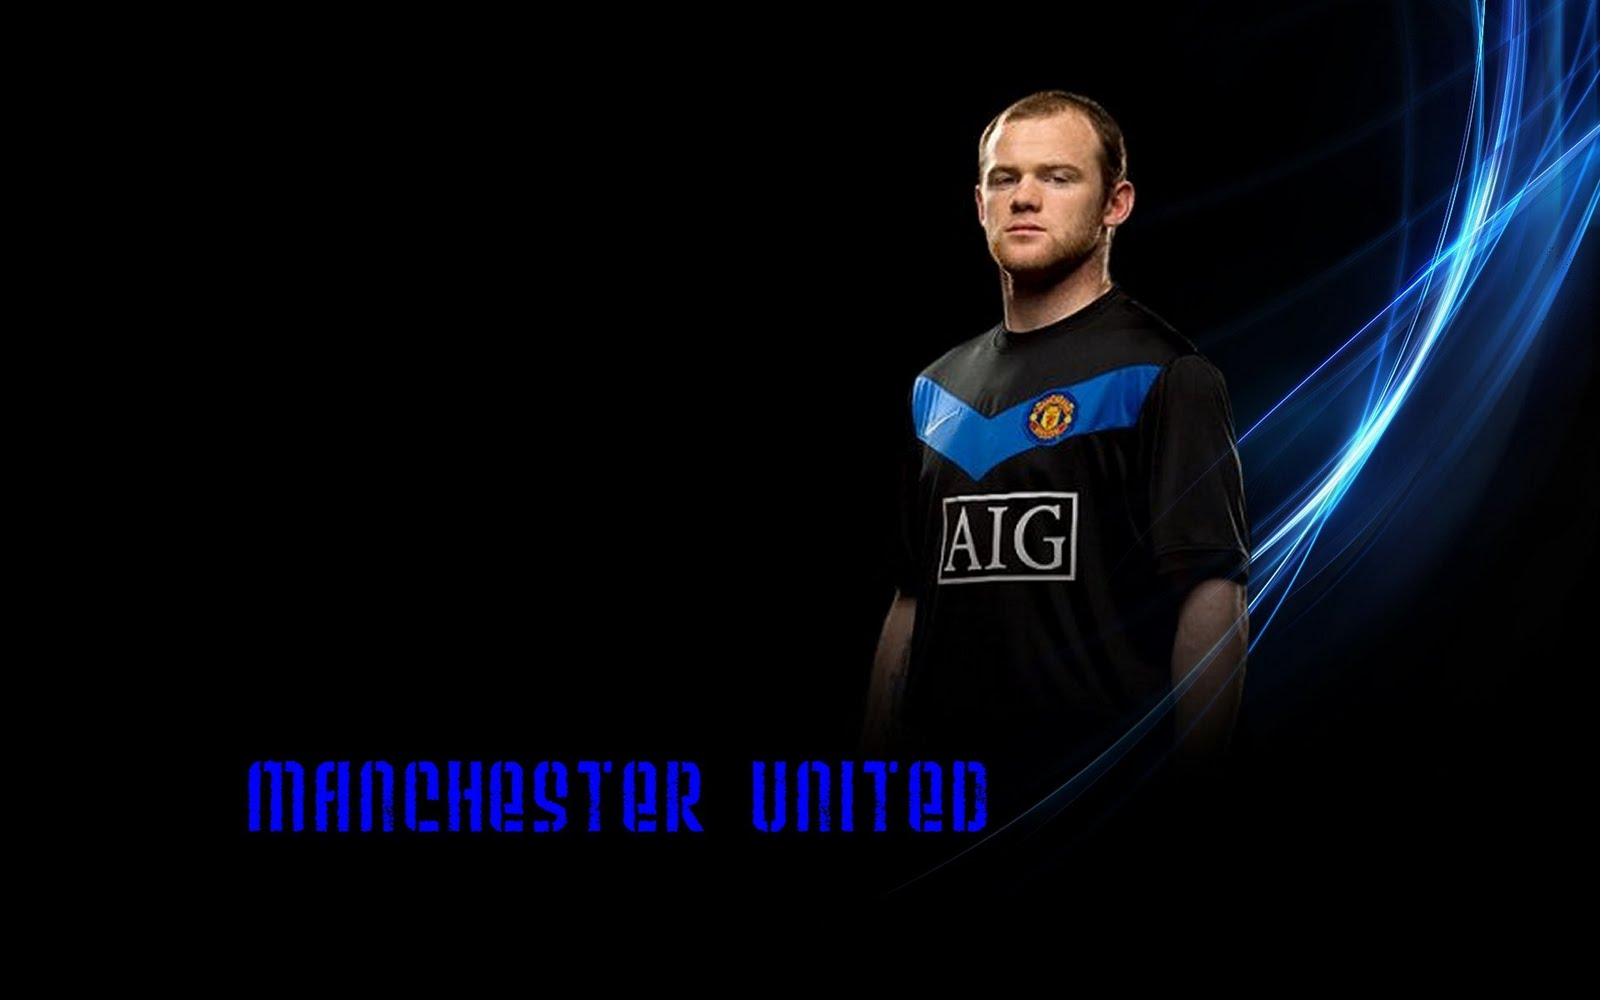 Wayne Rooney Hd All Wallpapers Wayne Rooney hd Wallpapers